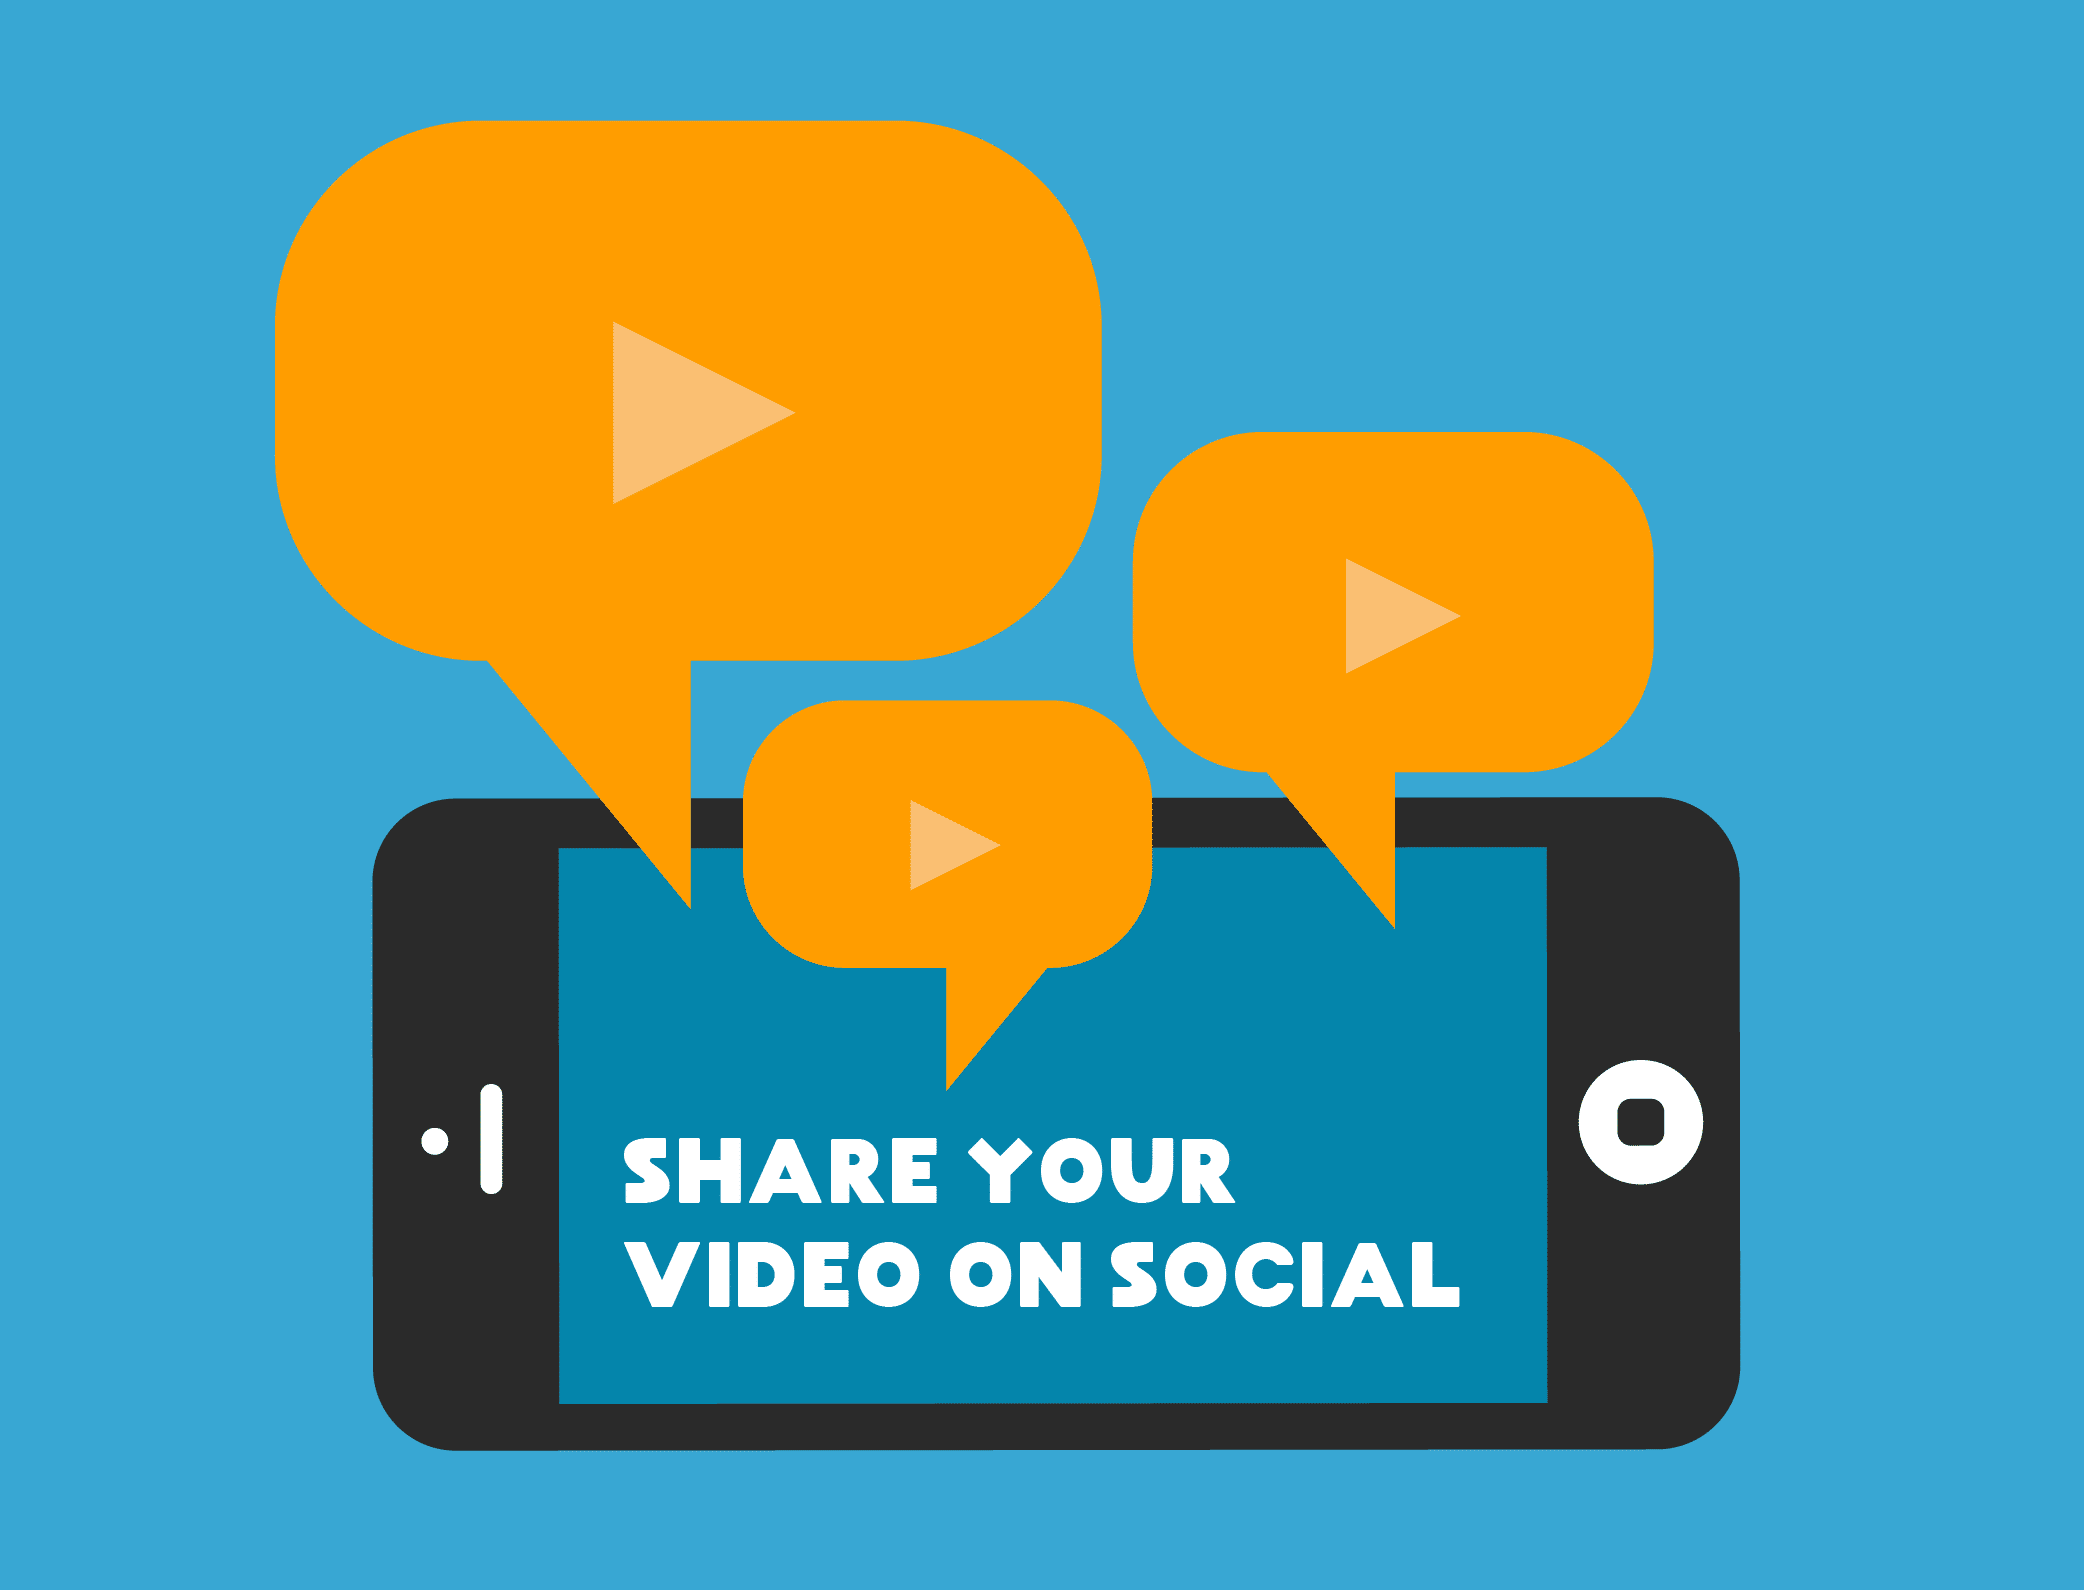 Share Your Video on Social